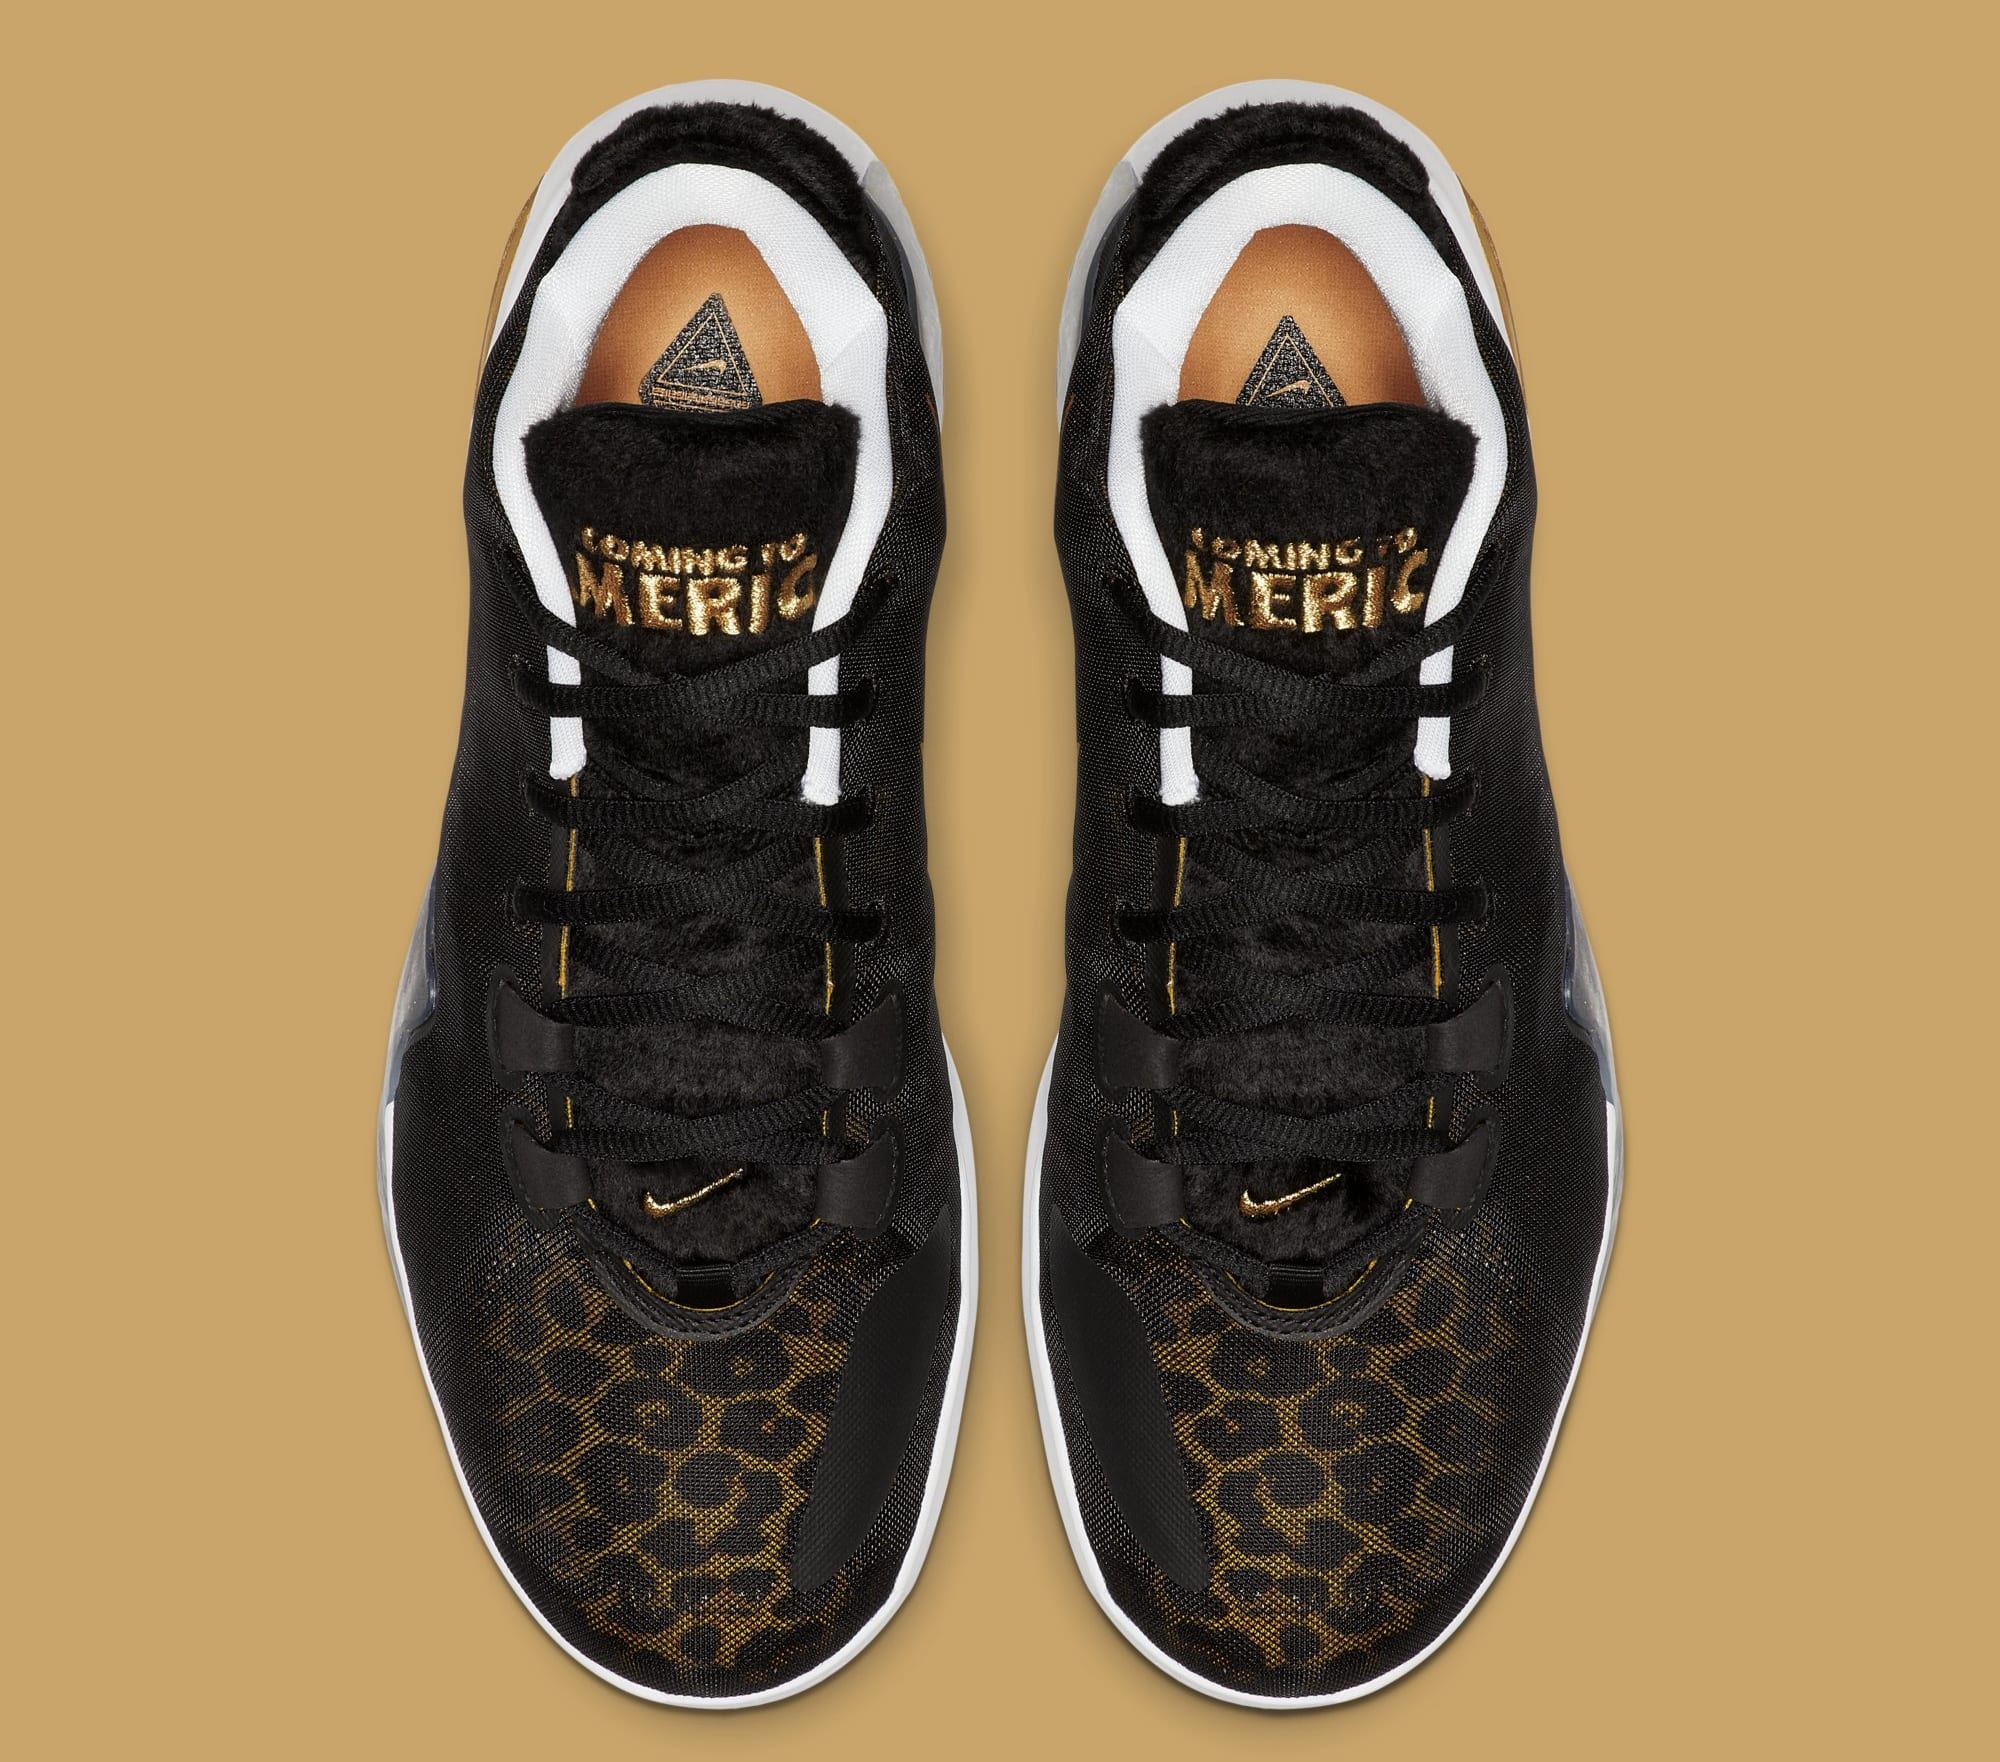 Nike Air Zoom Freak 1 'Coming to America' BQ5422-900 (Top)